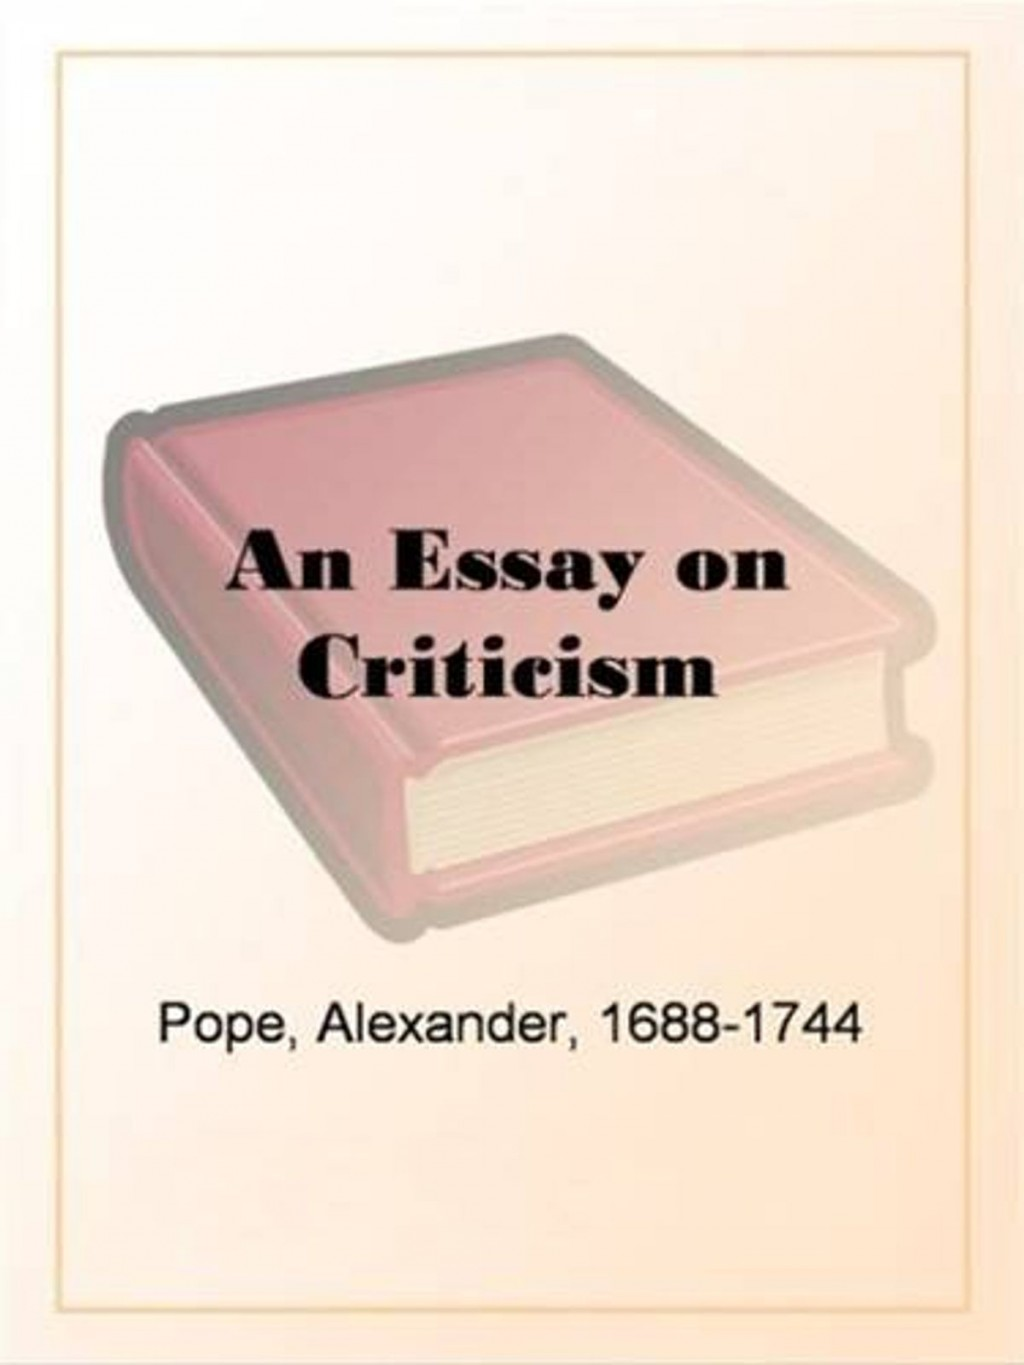 008 An Essay On Criticism Sensational Lines 233 To 415 Meaning Summary Sparknotes Large